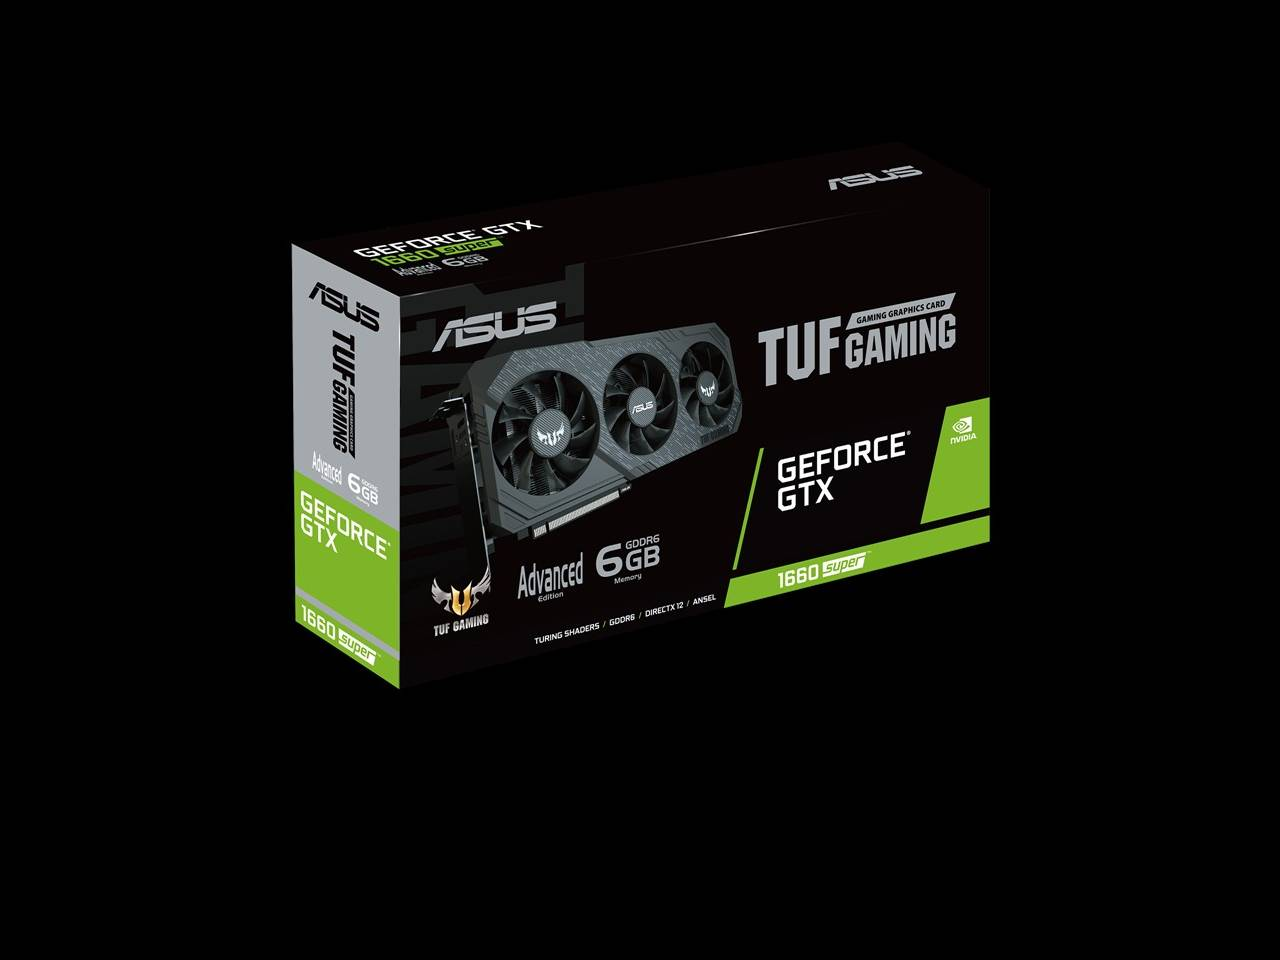 ASUS TUF Gaming X3 GeForce GTX 1660 SUPER Advanced edition 6GB GDDR6 Graphics Card-computerspace